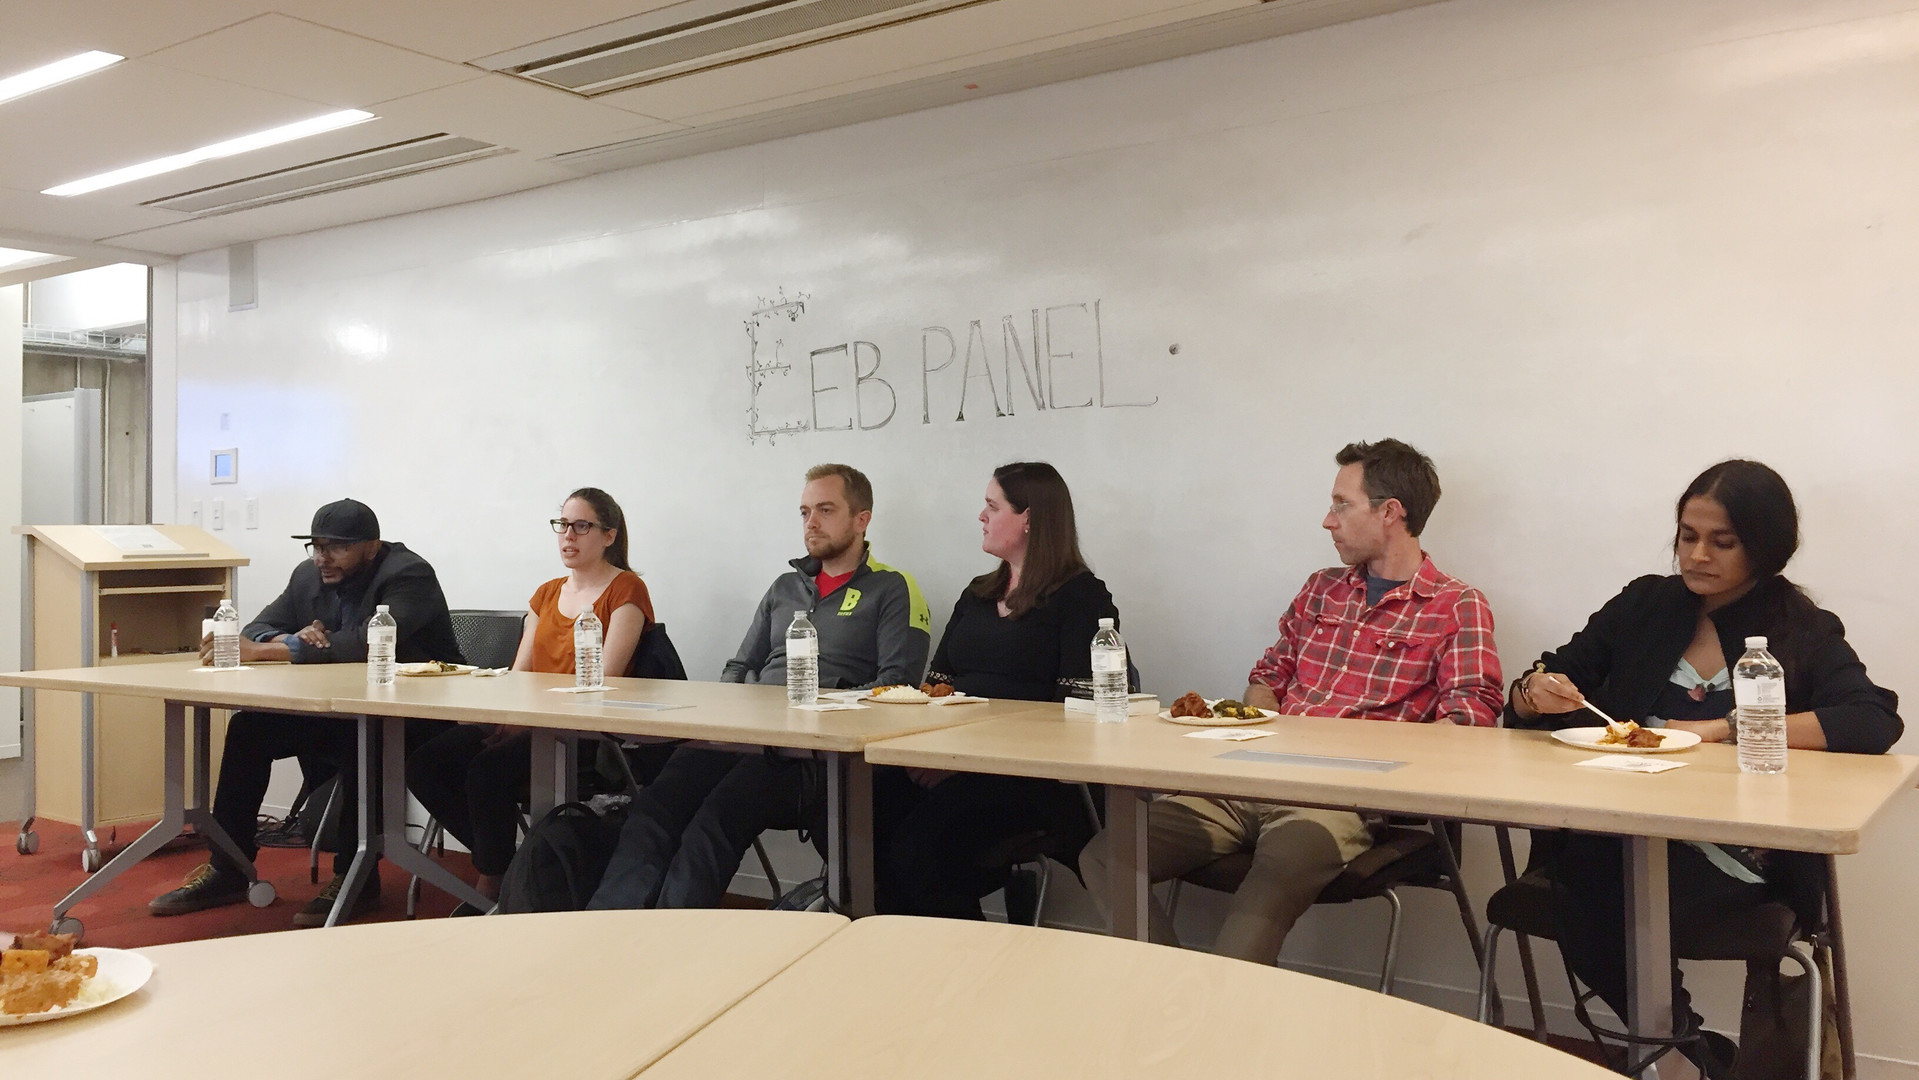 At the Graduate/Career Advice Panel, graduate students, postdoctoral students, and professors offer advice to undergraduate students about careers in EEB and applying to graduate school